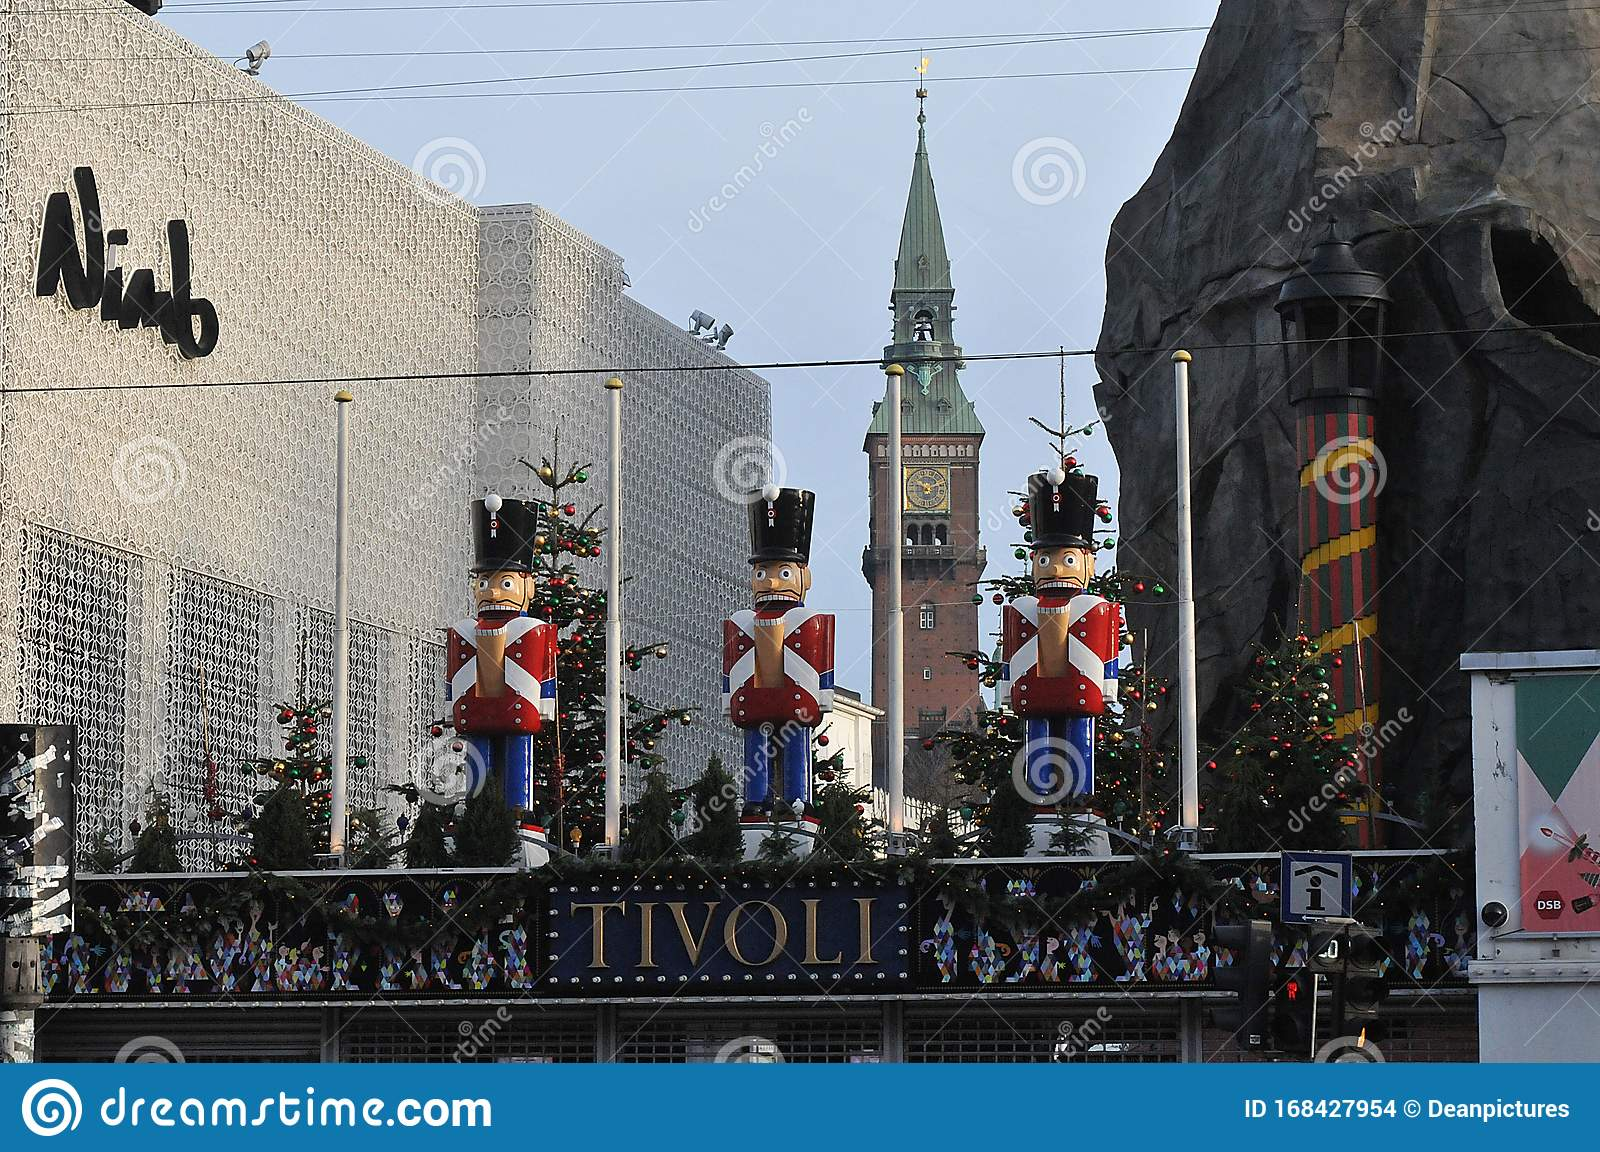 When Does The Christmas Season End 2020 TIVOLI GARDEN CHRISTMAS SEASON END TODAY Editorial Stock Image